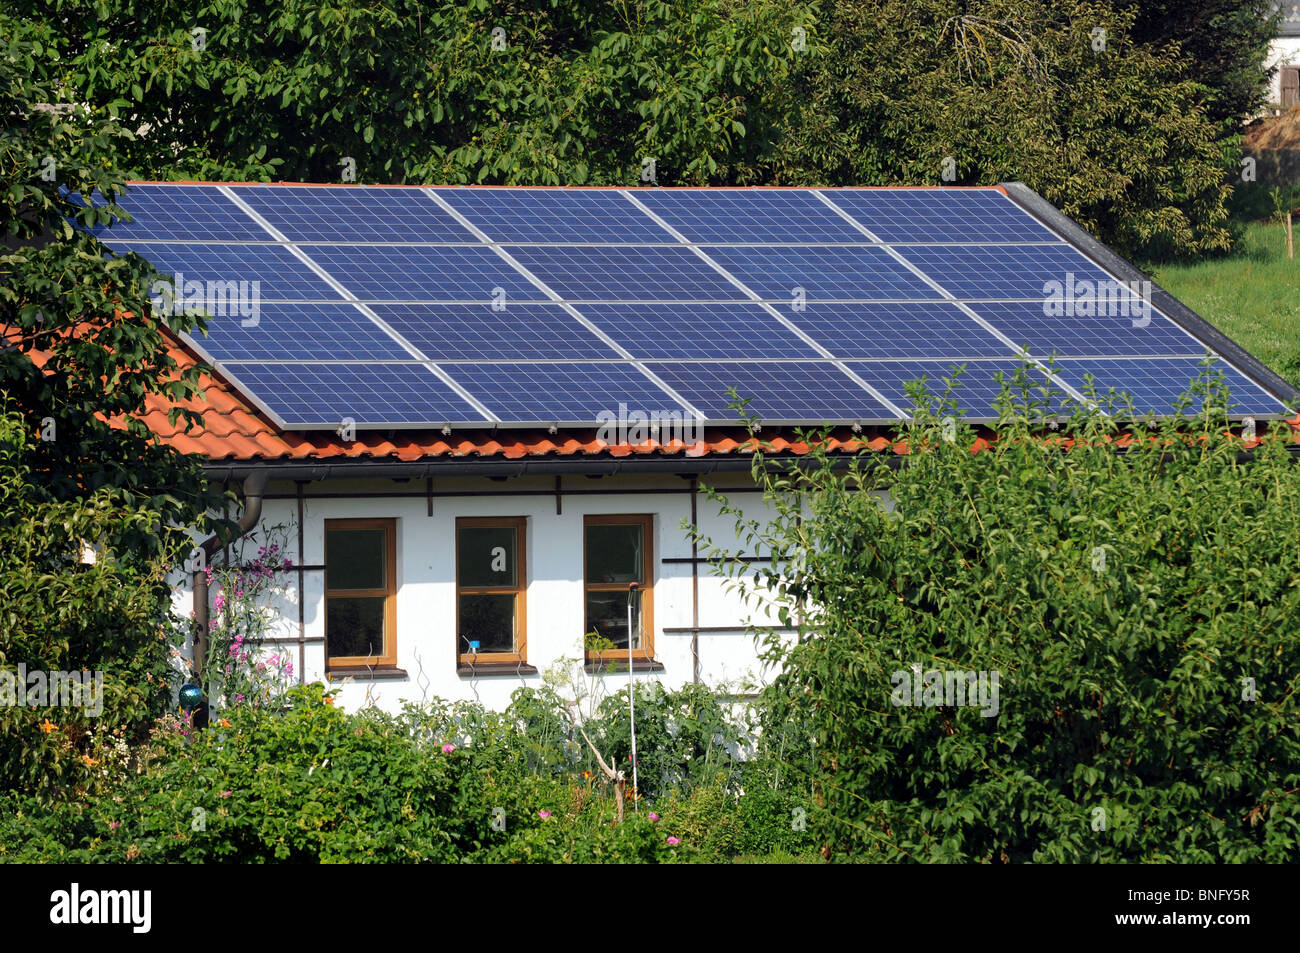 solar panel on roof garage stockfotos solar panel on. Black Bedroom Furniture Sets. Home Design Ideas